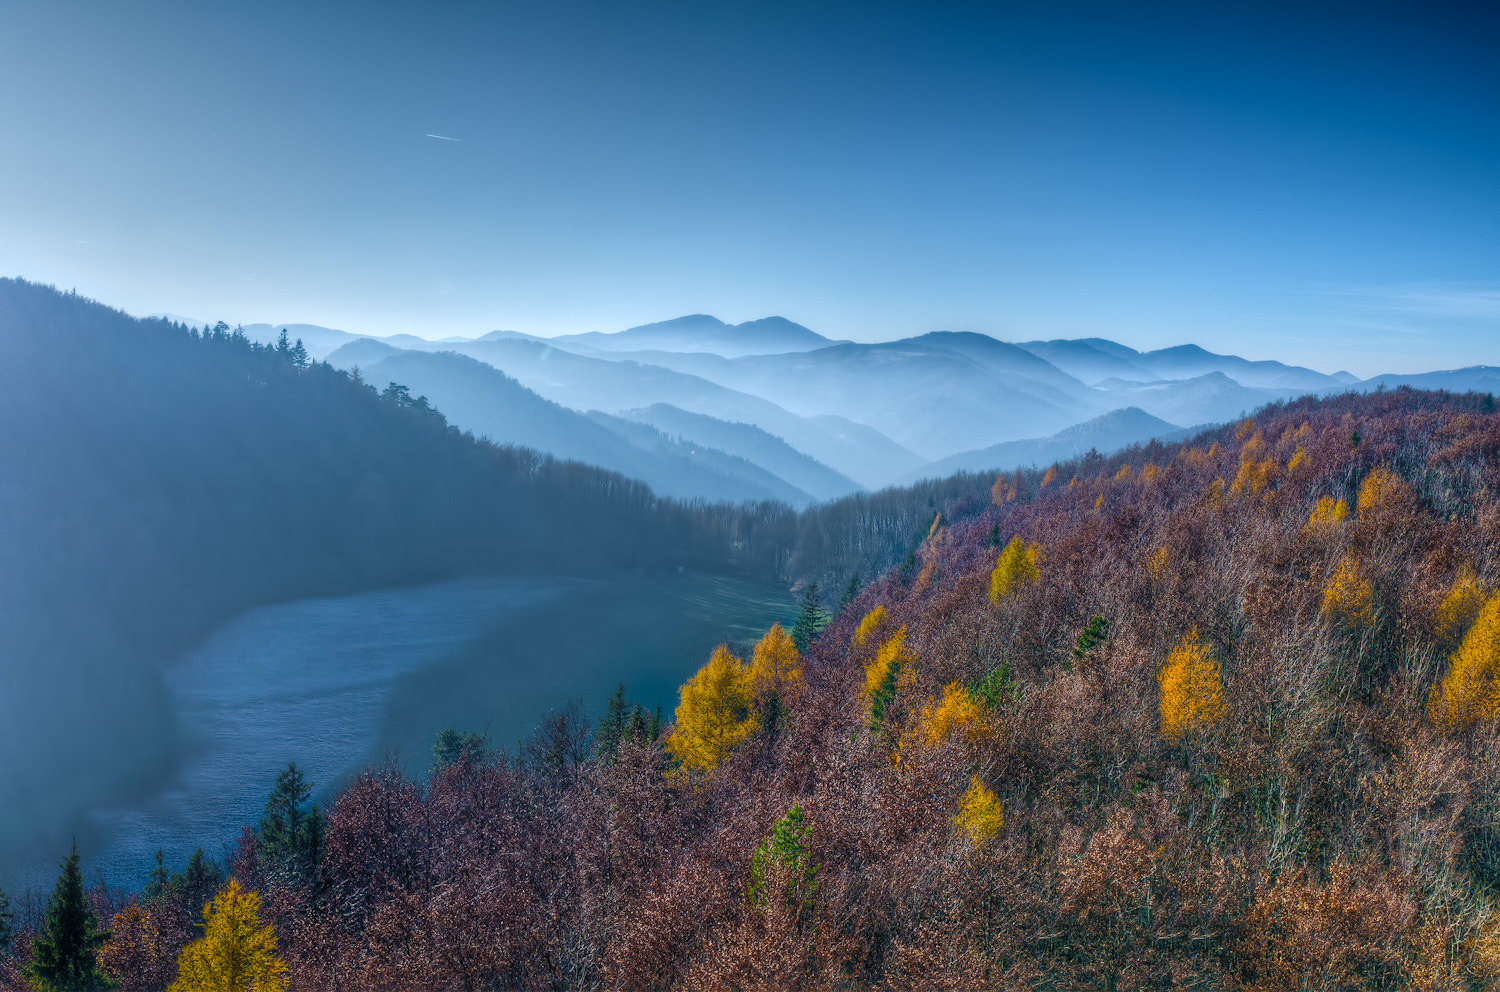 Photograph autumn by Paul Werner Suess on 500px